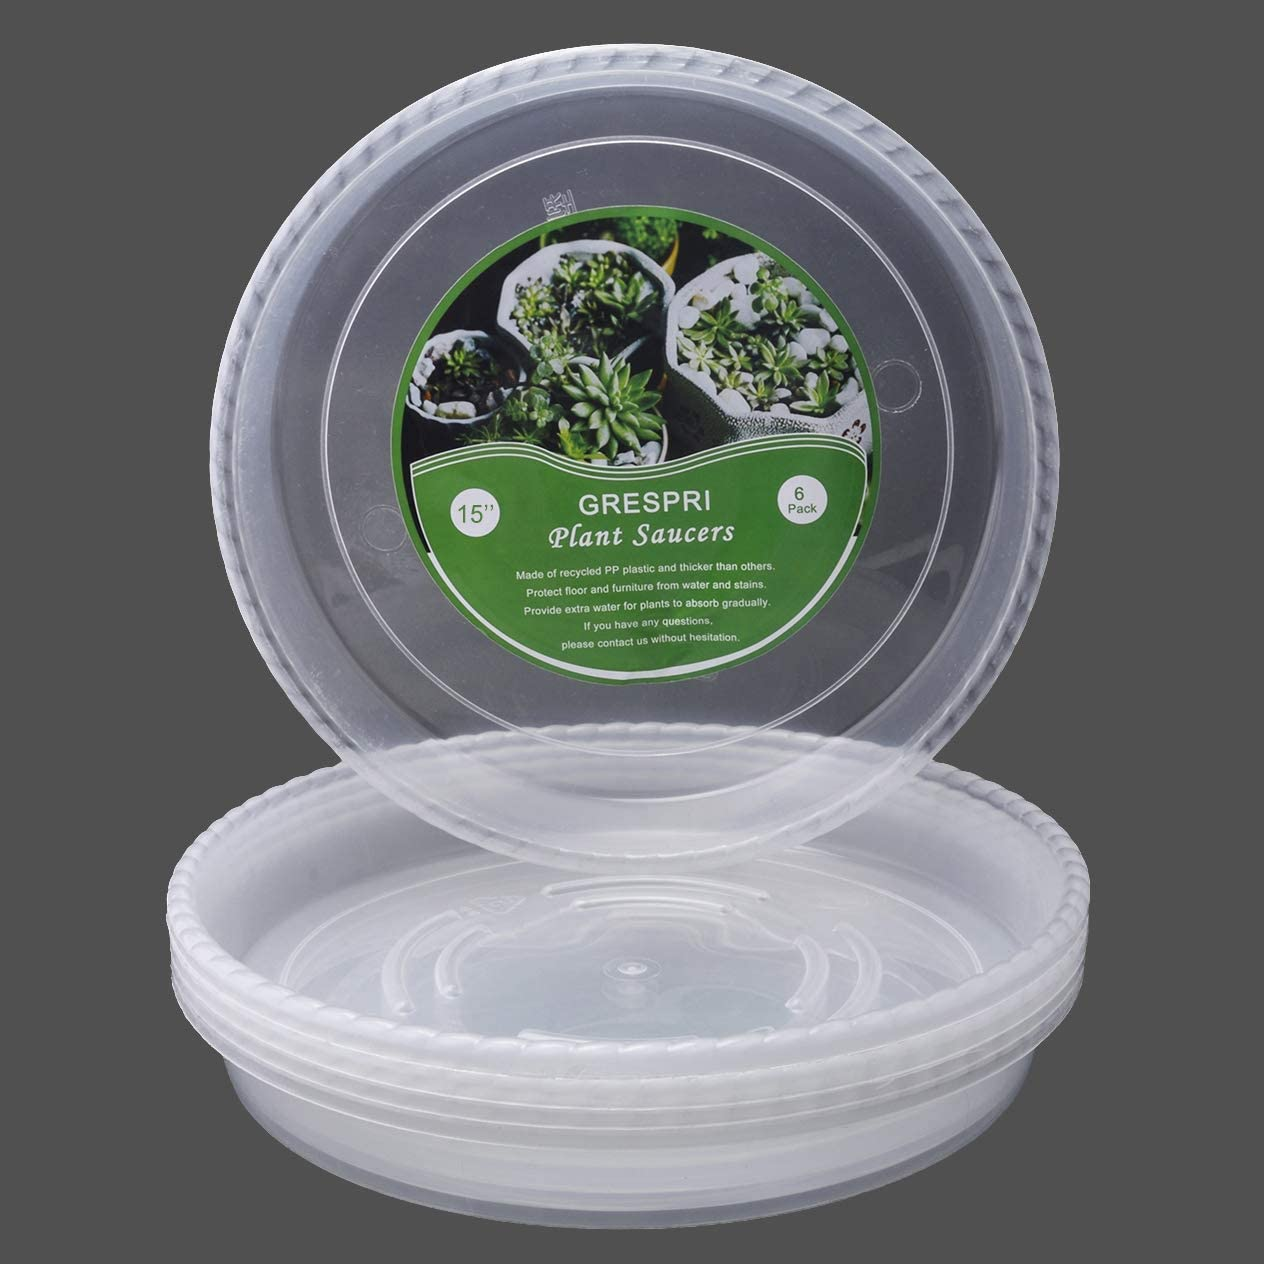 GRESPRI 6 Packs 15 Inches Premium Large Plant Saucers in Thick PP Plastic, Heavy Duty Flower Pot Saucers, Clear Indoor/Outdoor Round Plant Tray and Drip Pan Waterproof for Drips and Excess Water.